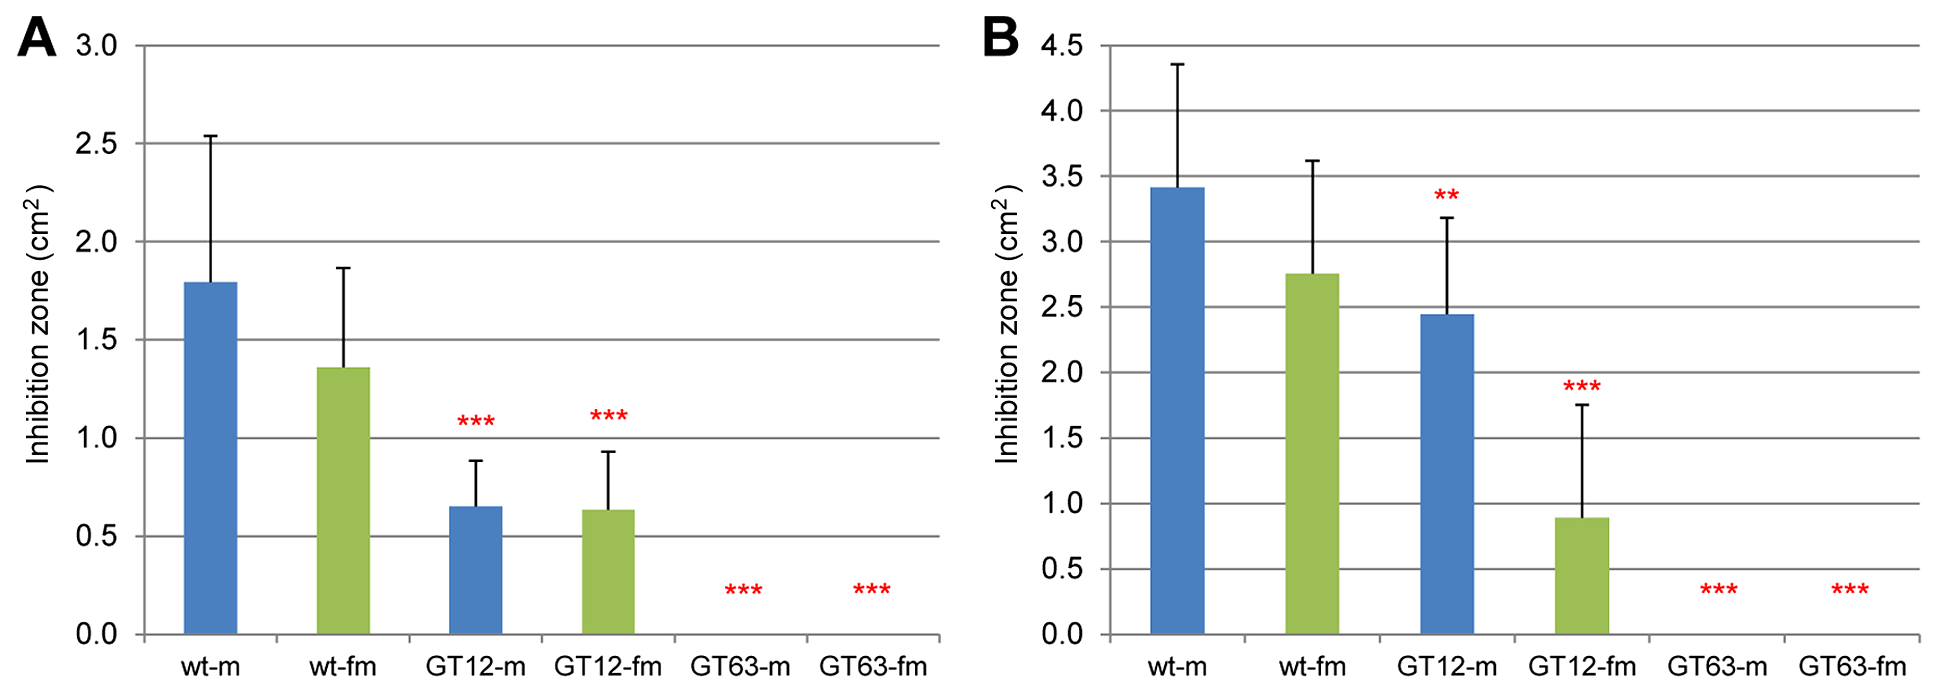 Microbe growth inhibition assays of wild-type and RNAi-knock-down glands.